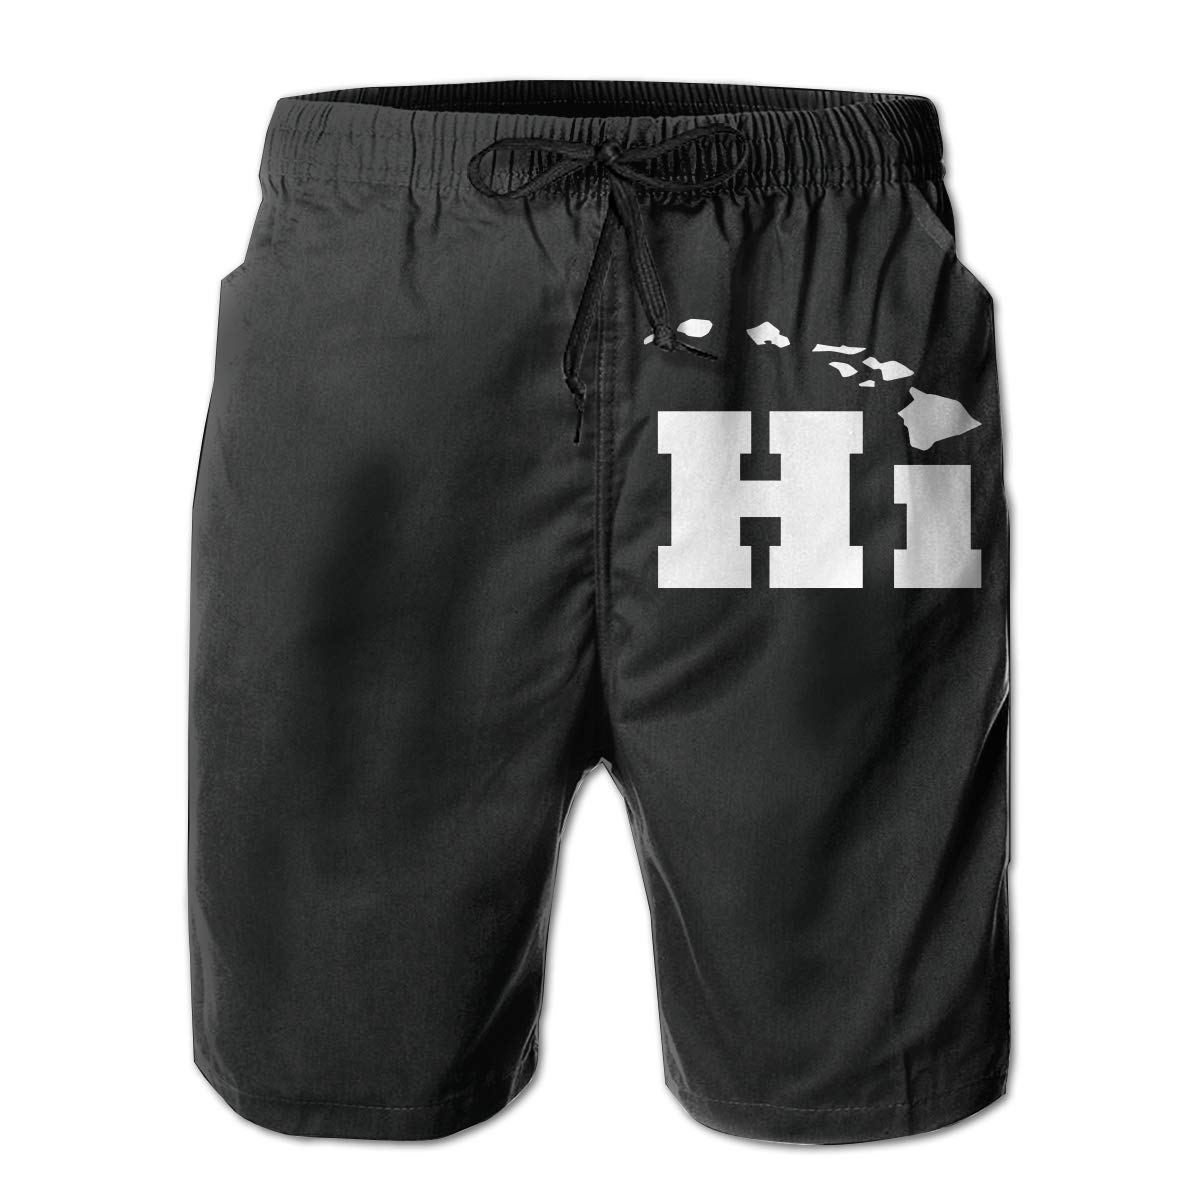 Xk7@KU Mens Quick Dry Swim Trunks Polyester Hi with Hawaii Island Swimsuit with Pockets